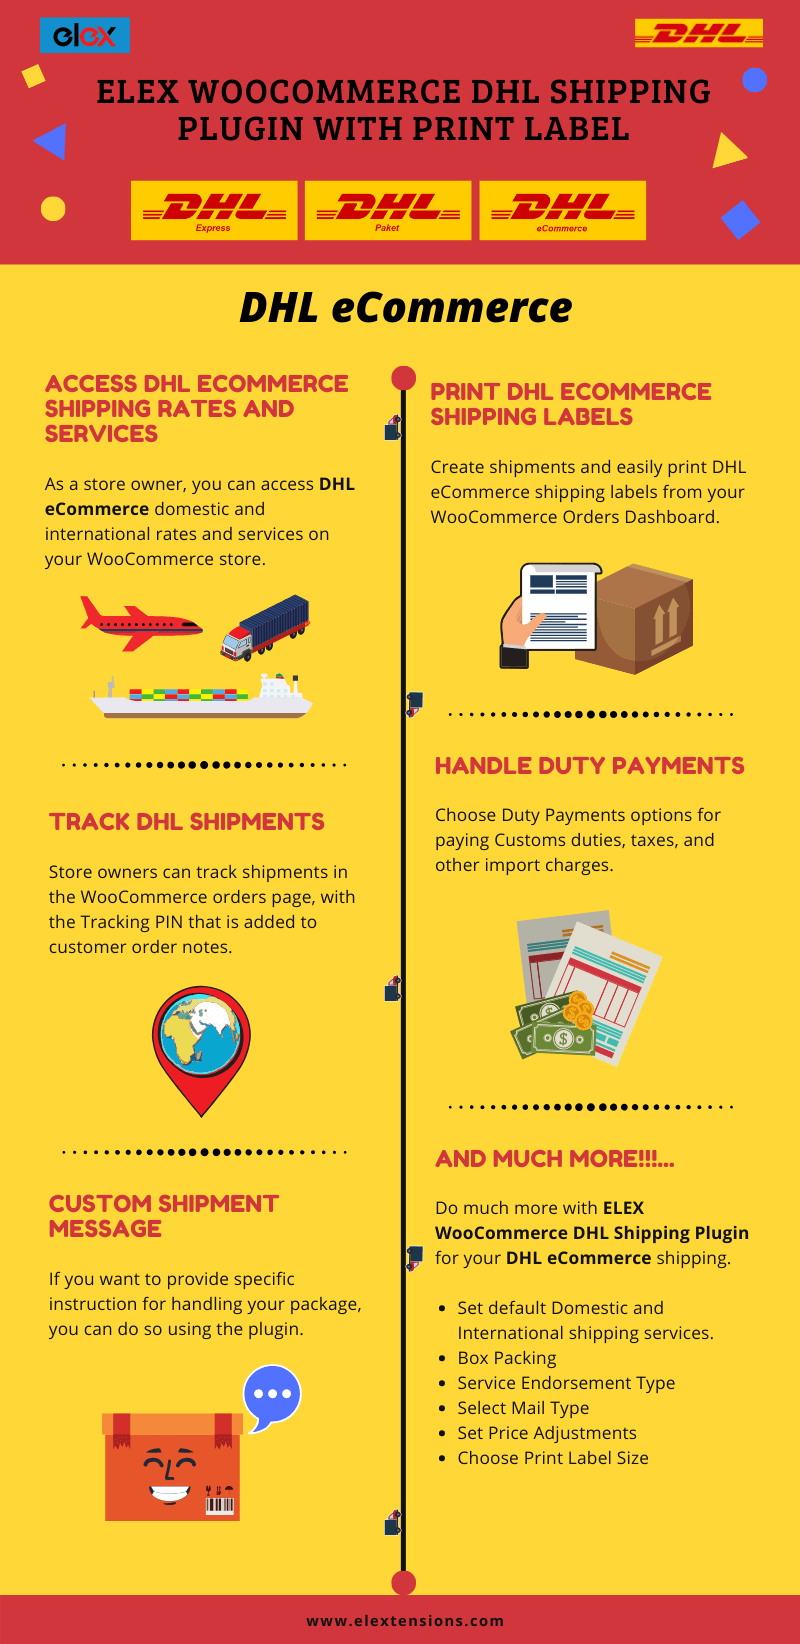 How to find DHL locations || DHL eCommerce | ELEX WooCommerce DHL Shipping Plugin with Print Label